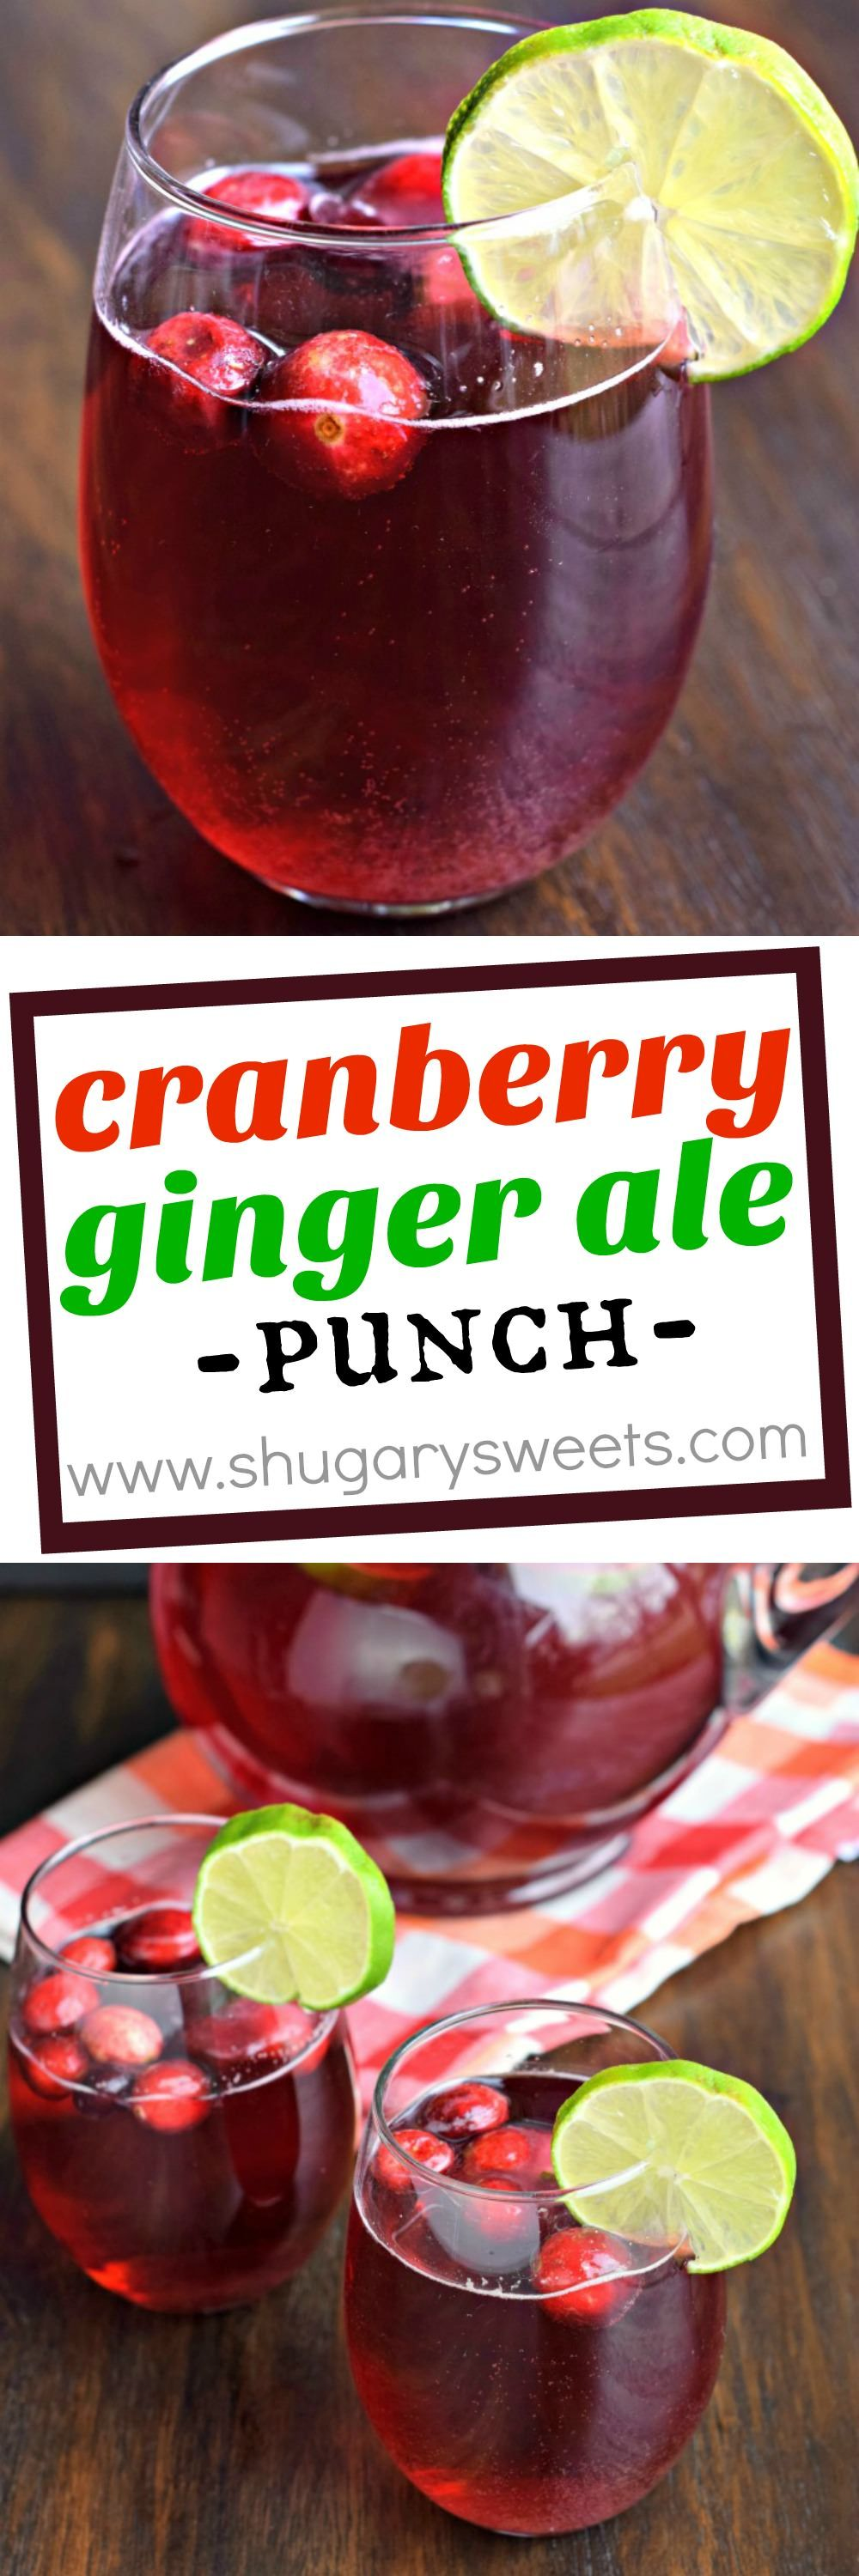 Cranberry Ginger Ale Punch That Can Be Made Boozy Or Not It S Great For Grown Ups And Kids Alike Cranberry Ginger Ale Ginger Ale Punch Punch Recipes